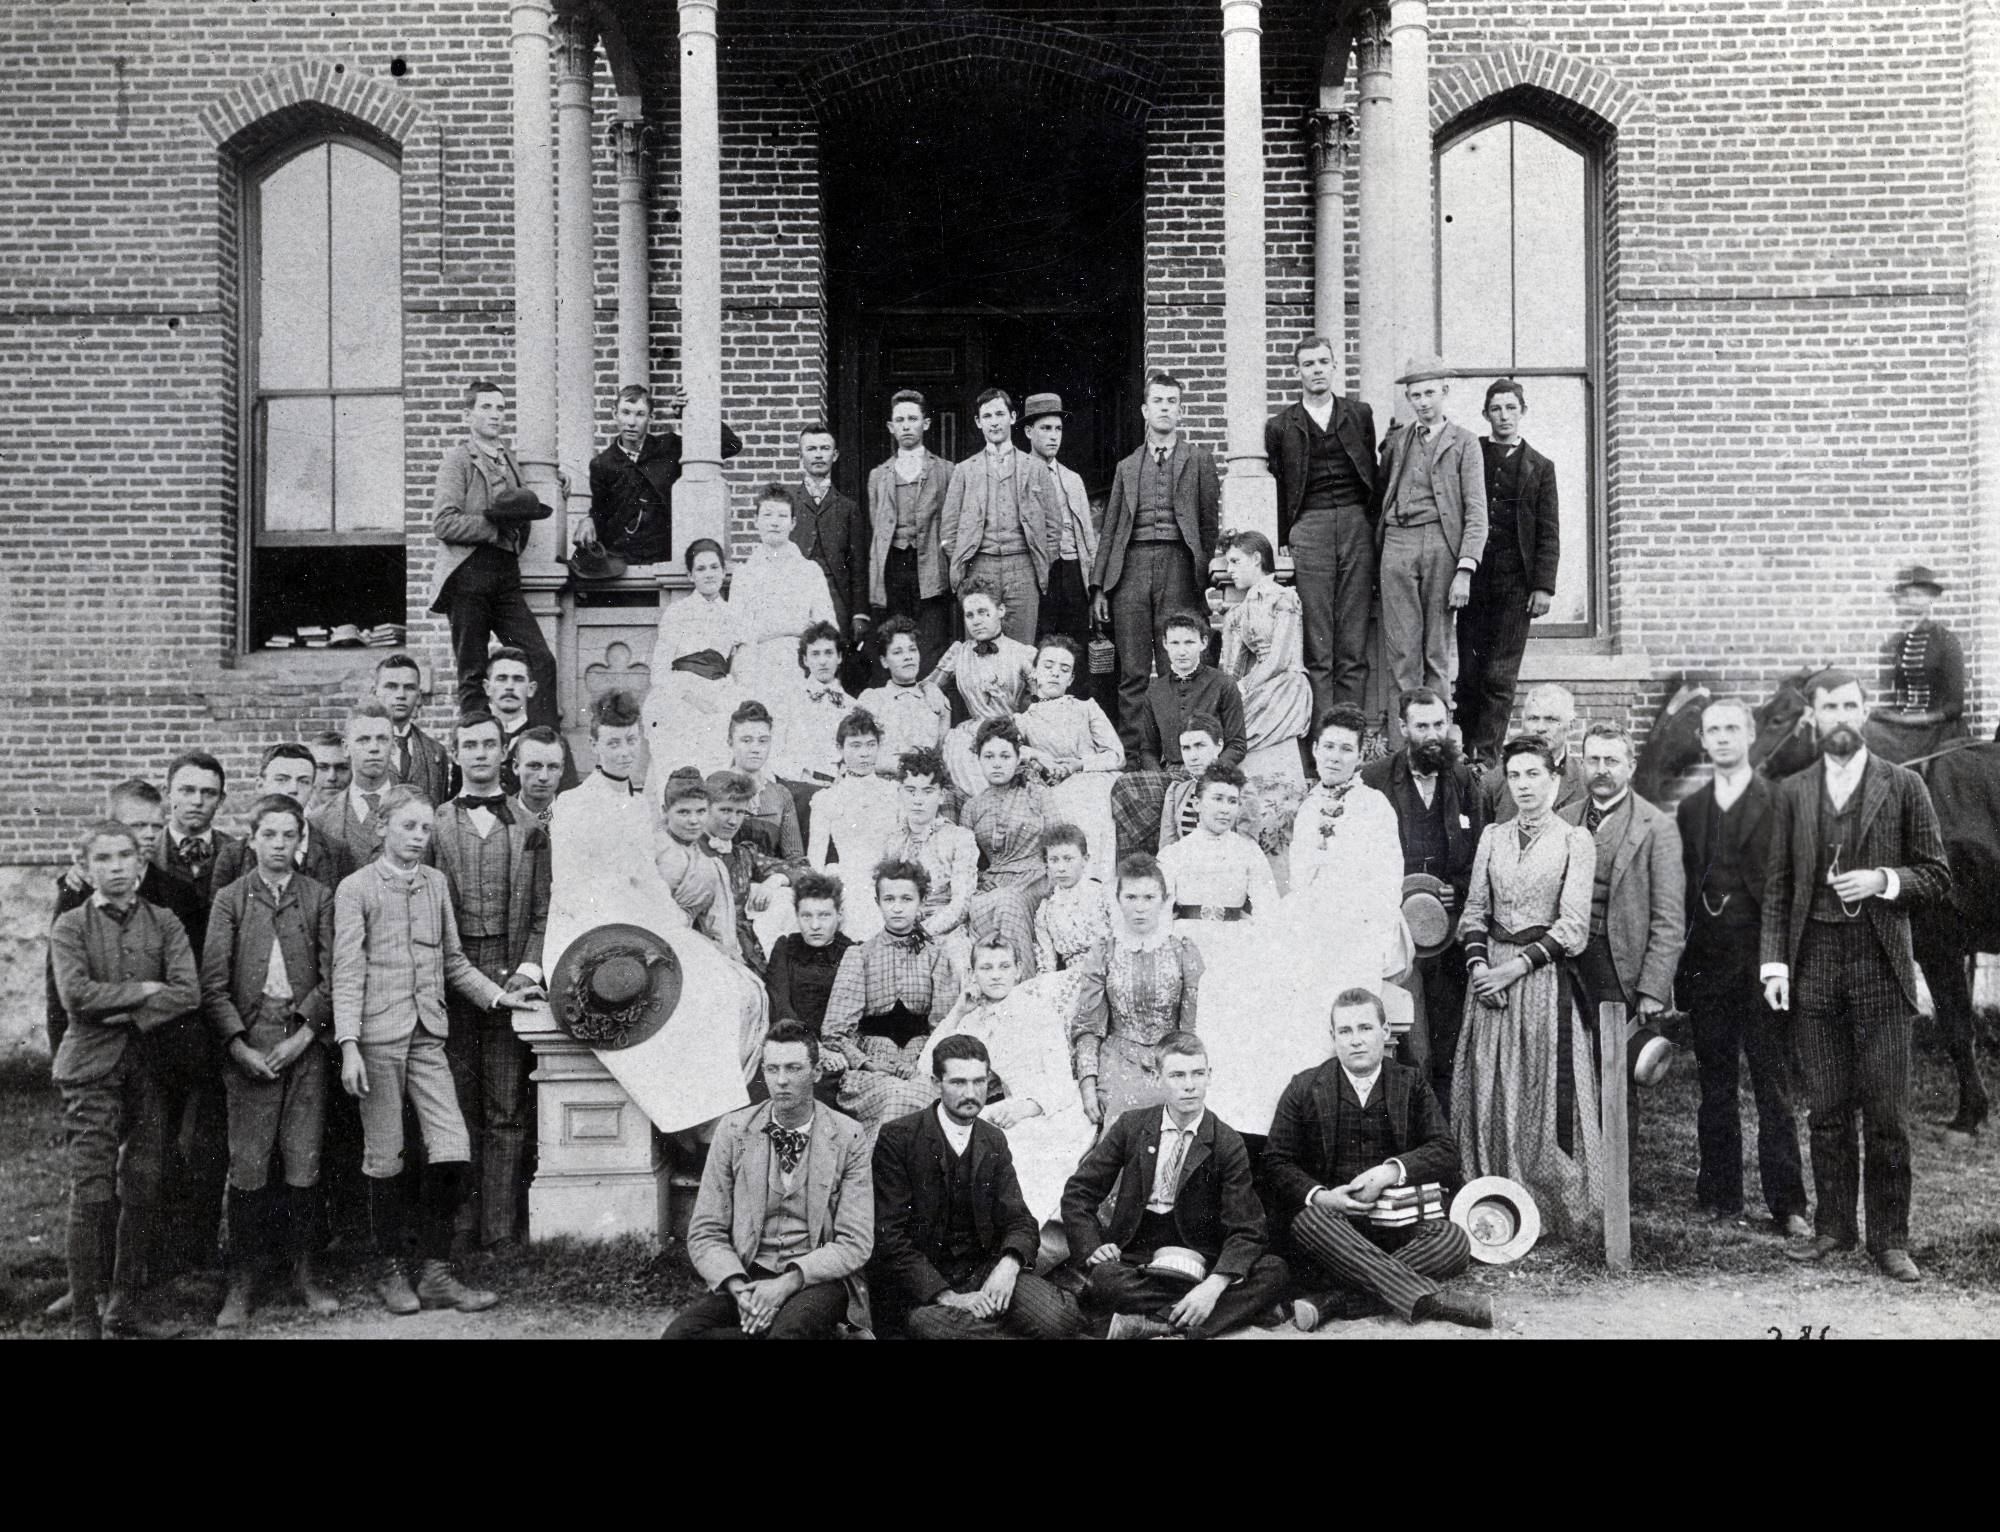 A black and white photo of Chaffey students in 1890.